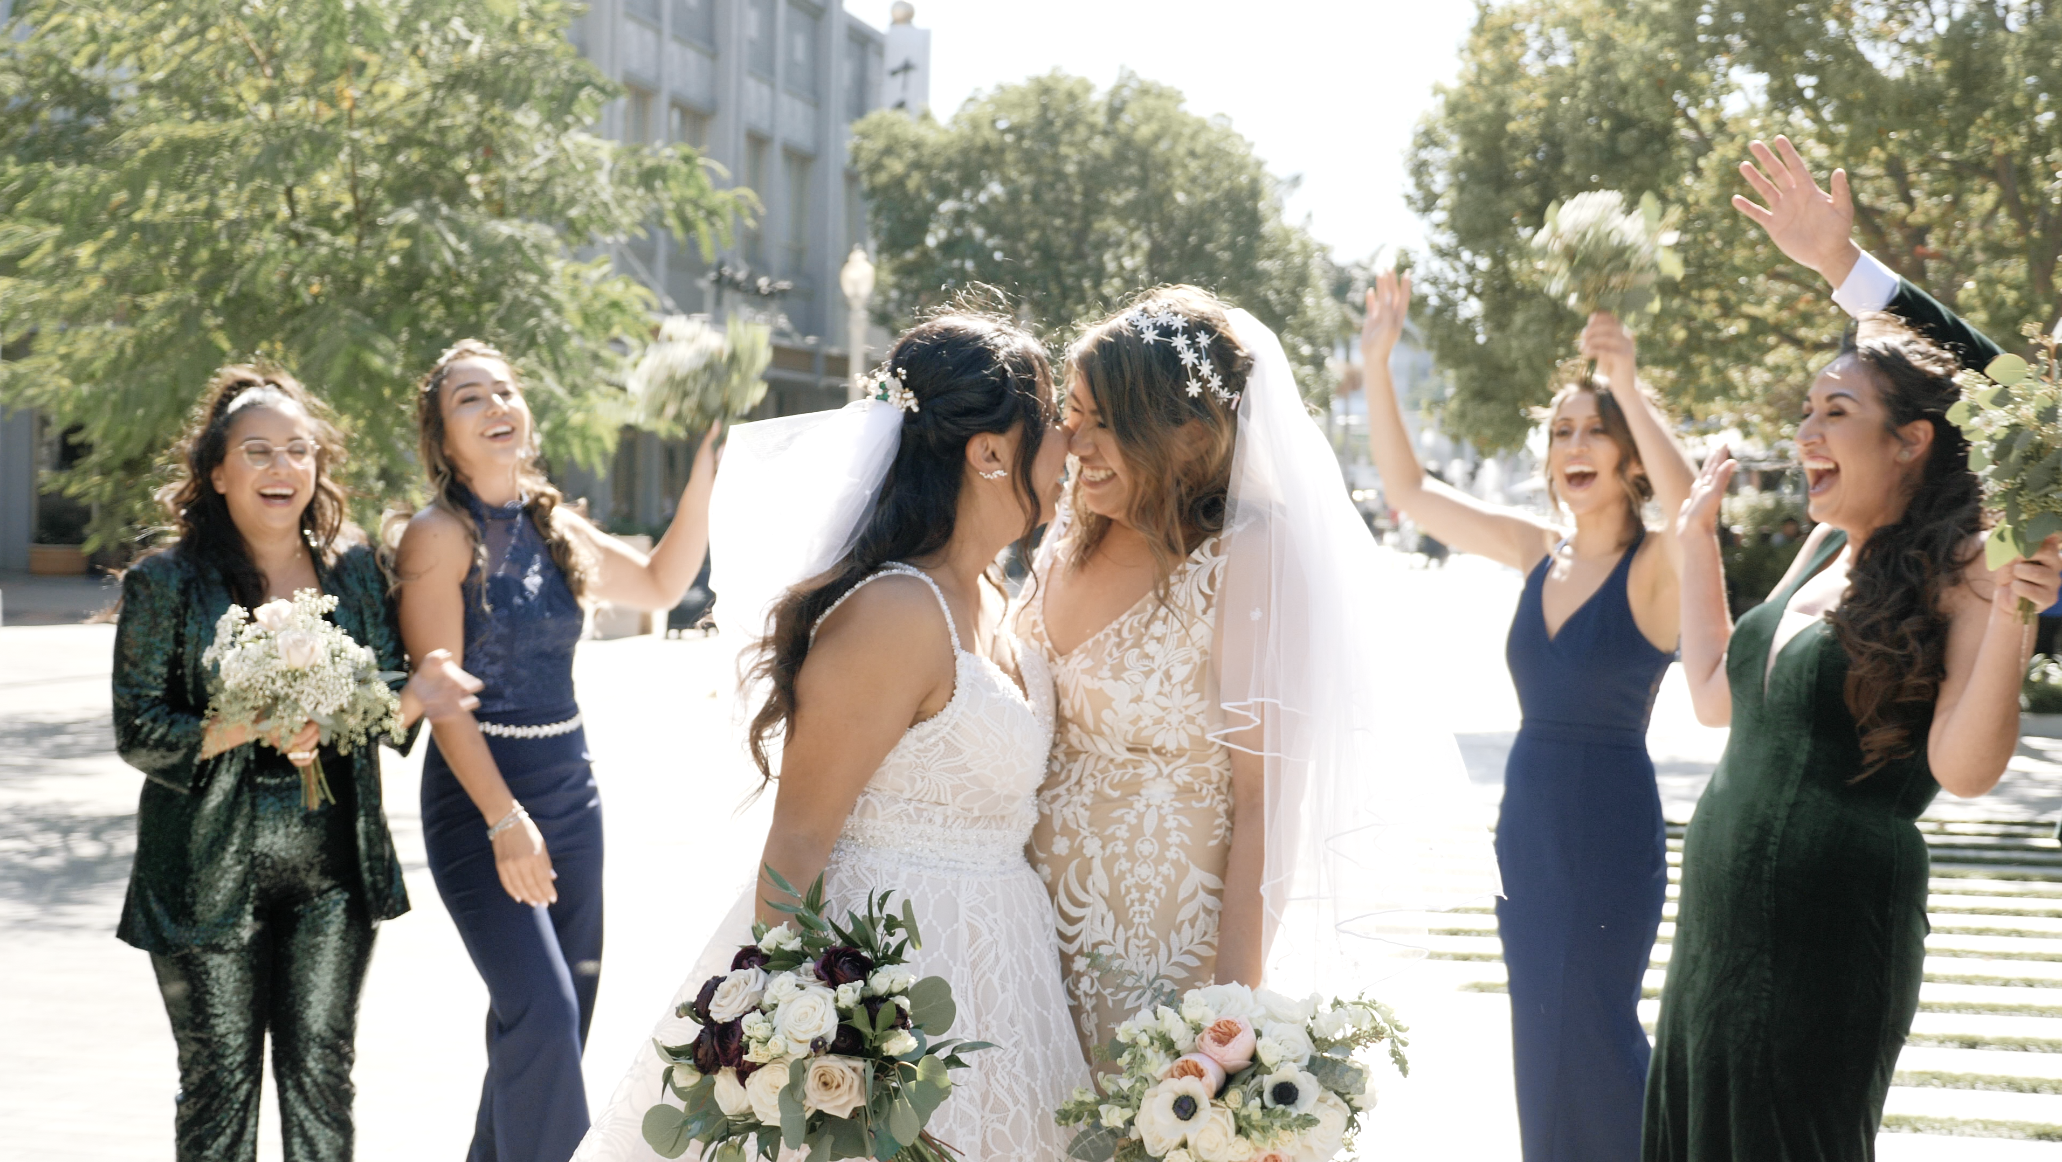 Stefaney + Valerie | Los Angeles, California | SmogShoppe